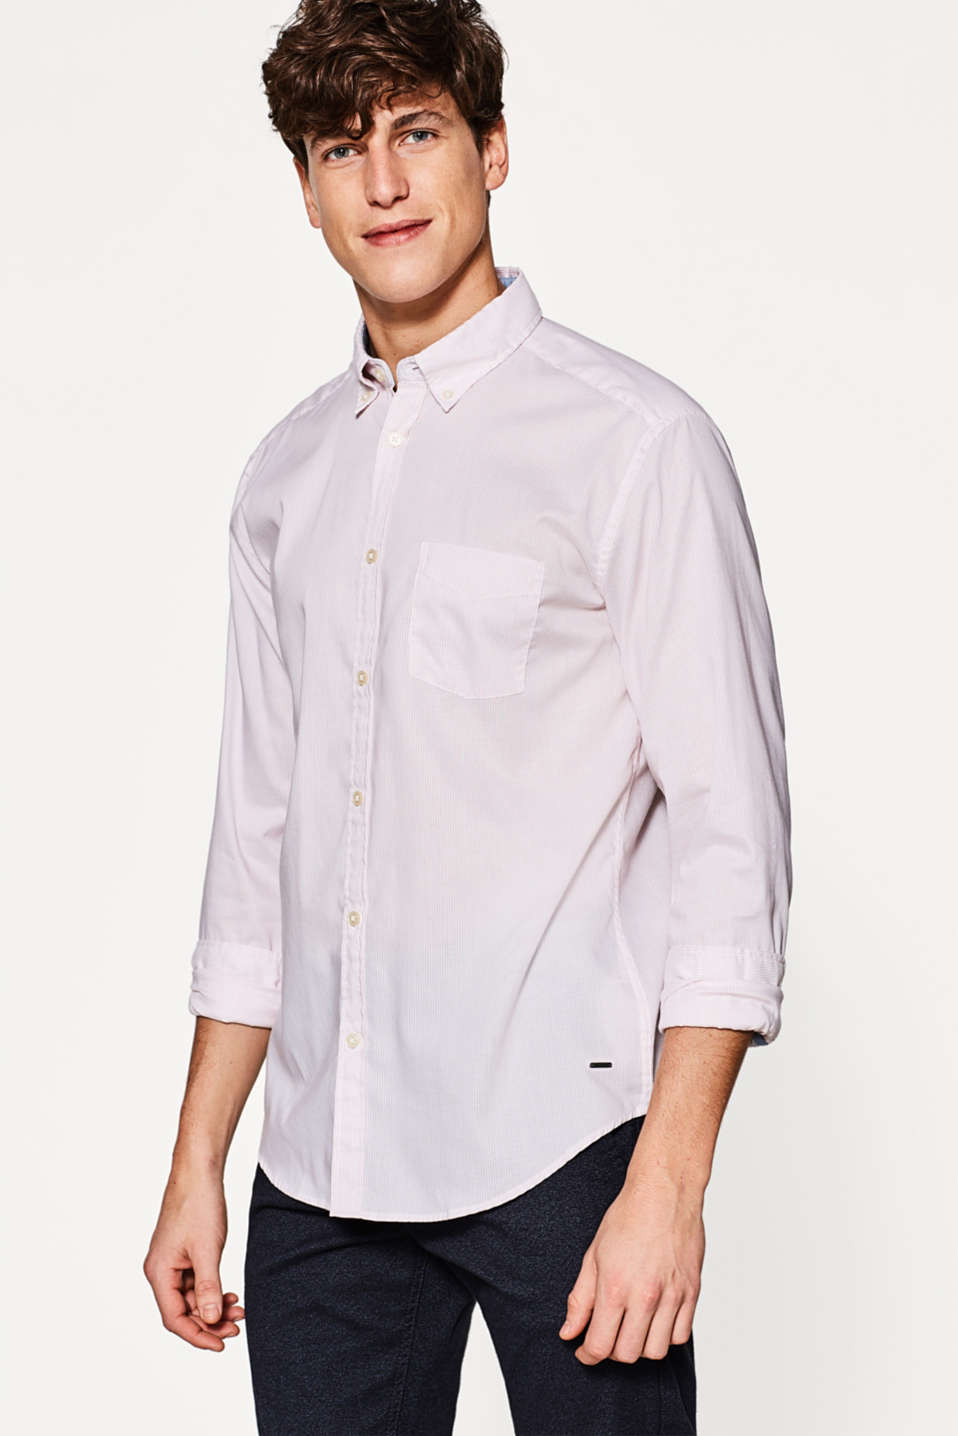 Esprit - Shirt with vertical stripes, in cotton